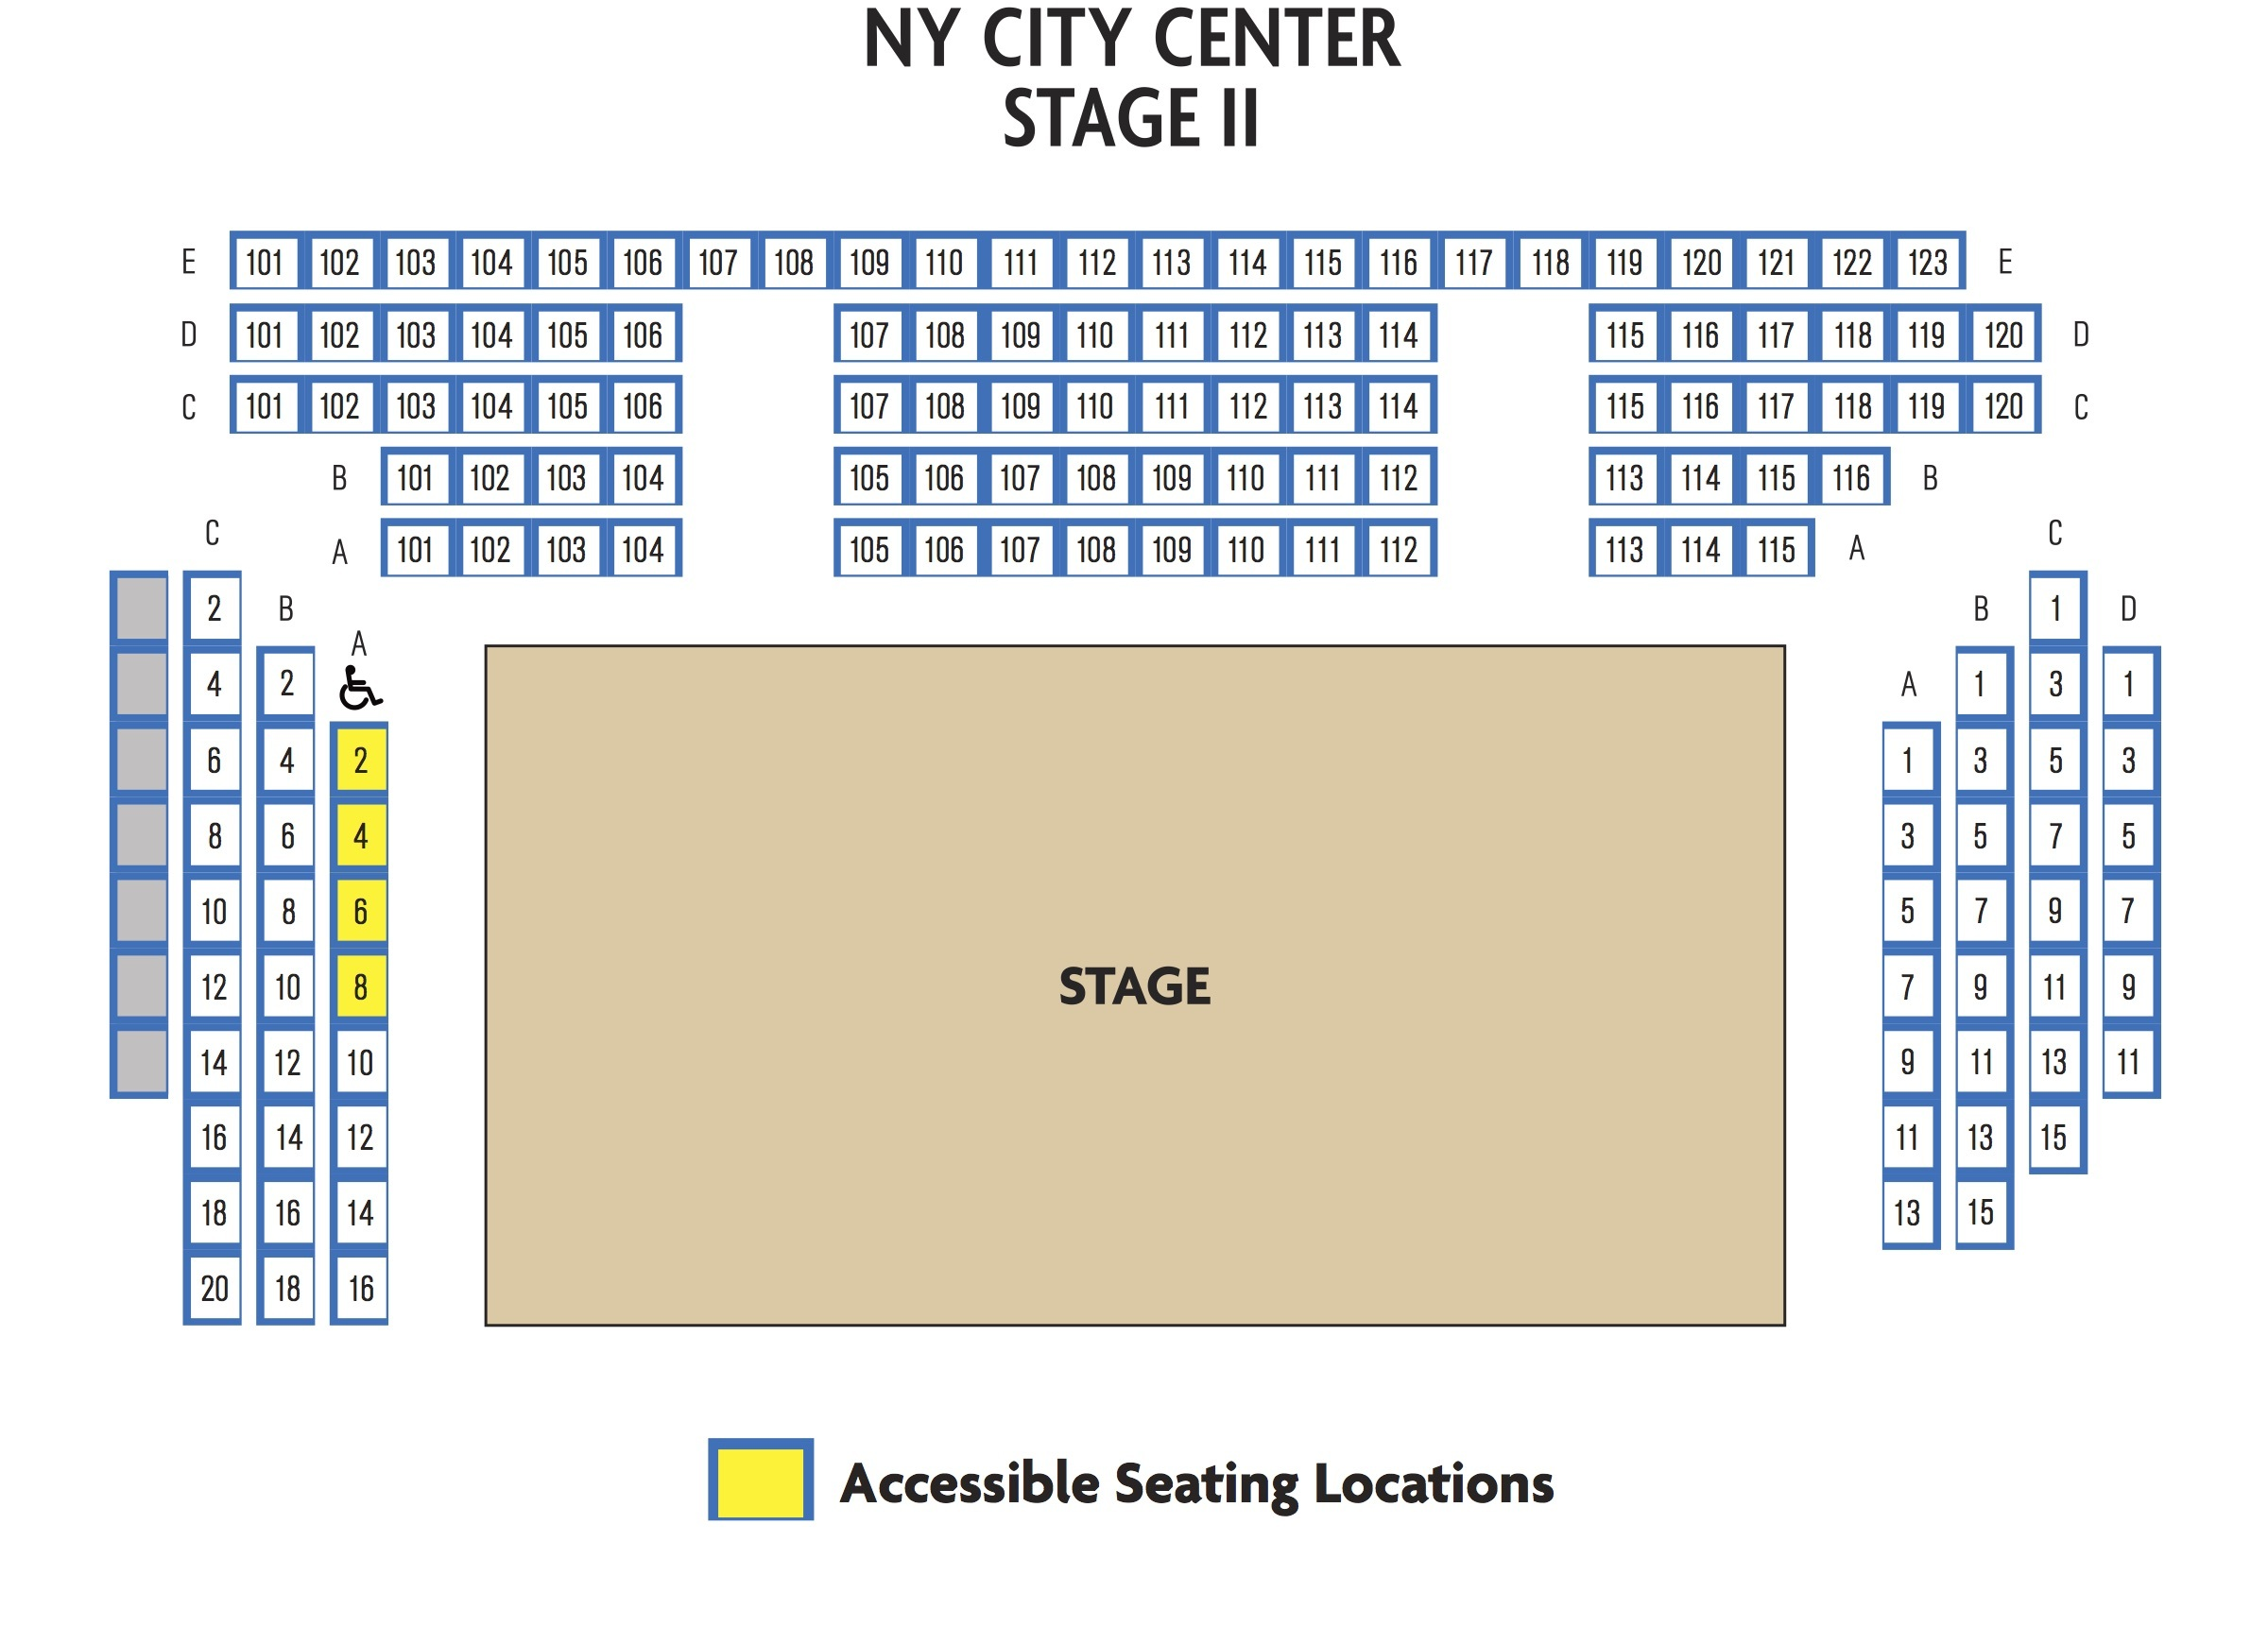 New york city center stage 2 new york tickets schedule seating